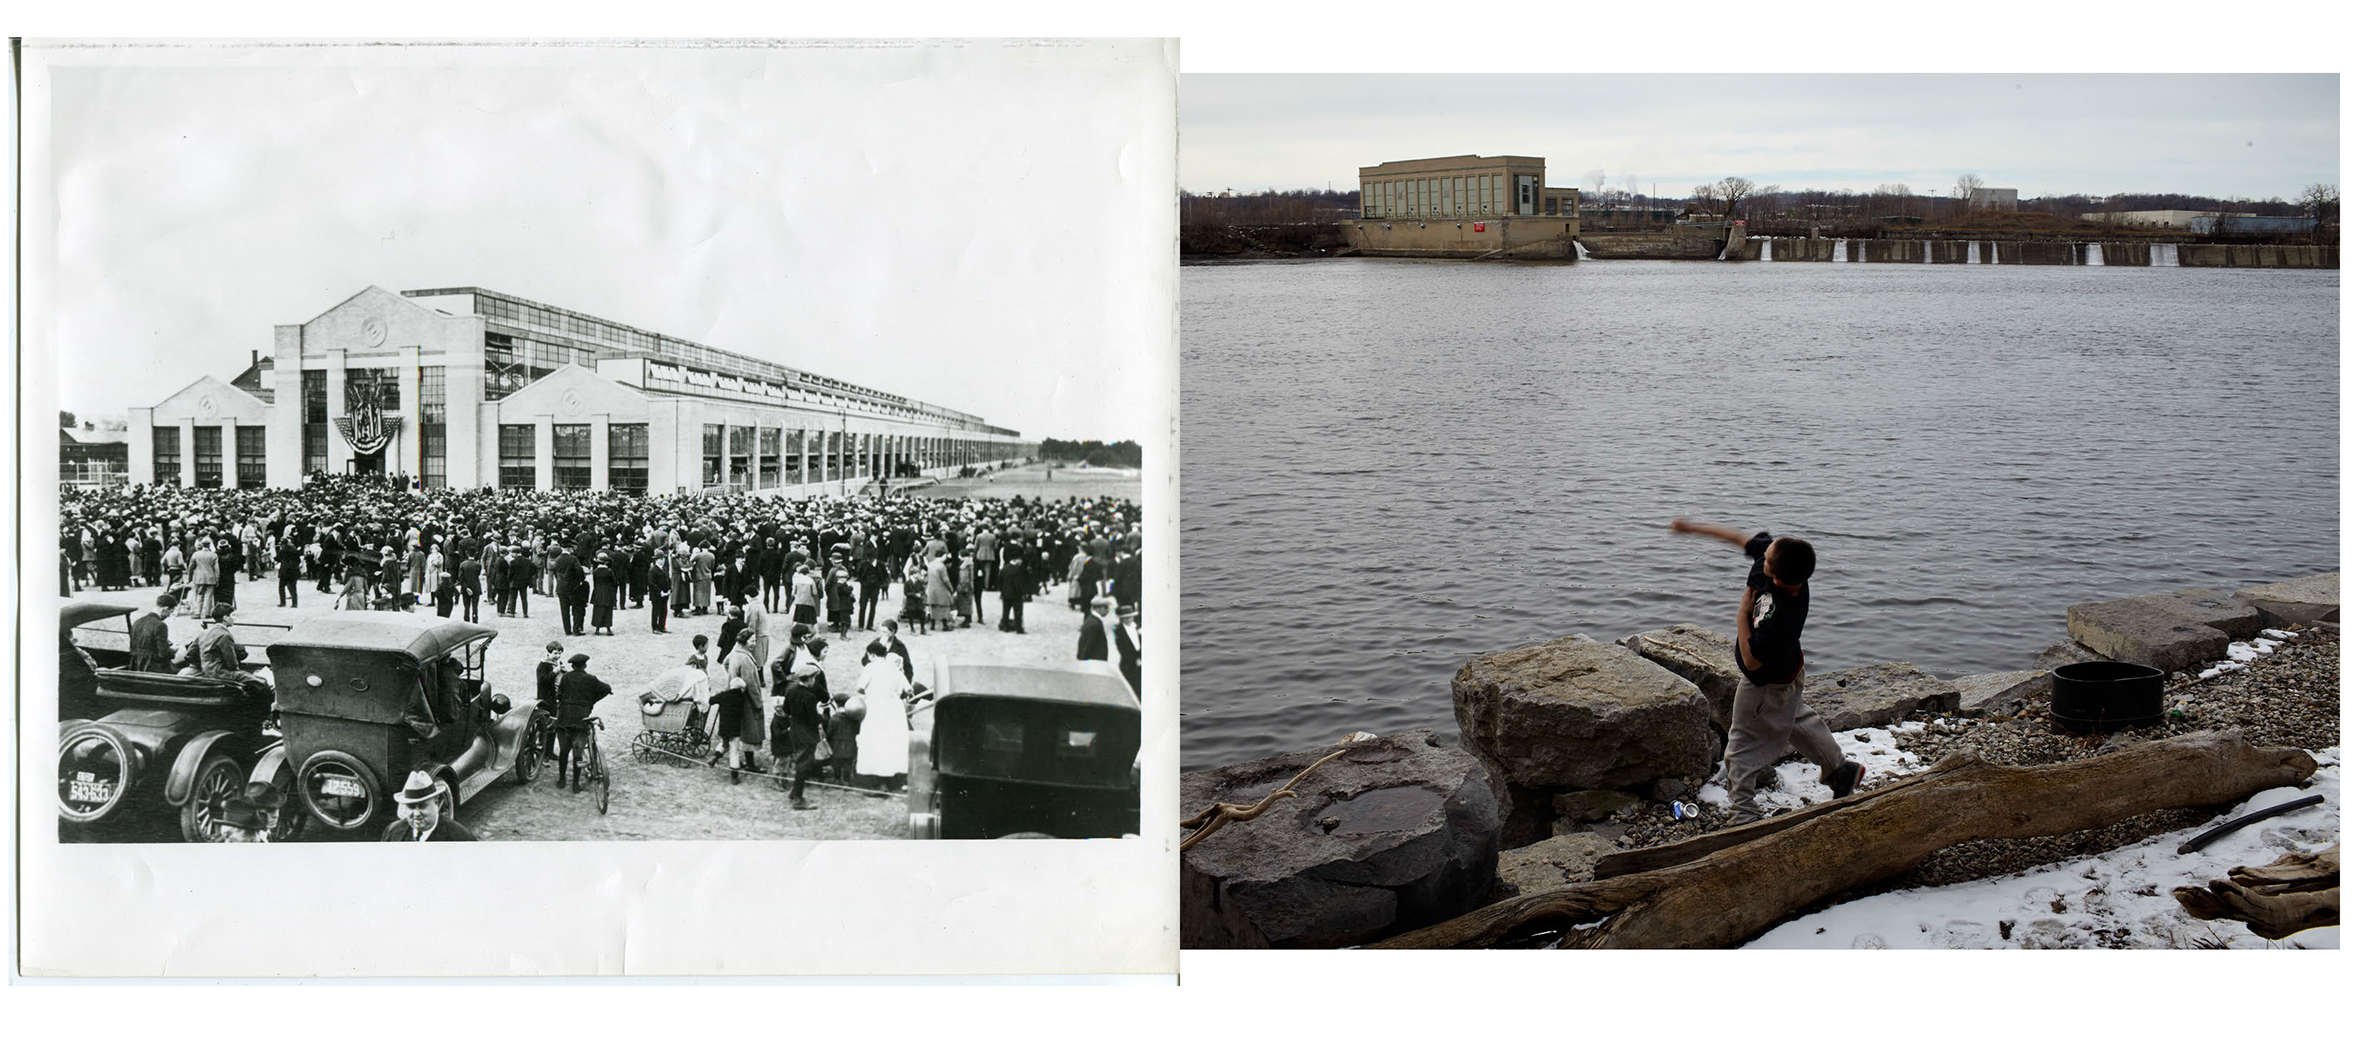 Left: In Green Island, across the Hudson from Troy, a Ford Motor plant was opened in 1922.                                                              Right: Tony skipping rocks in The Hudson, with old Ford Motor Plant across the River.                                 Troy NY.  2012.